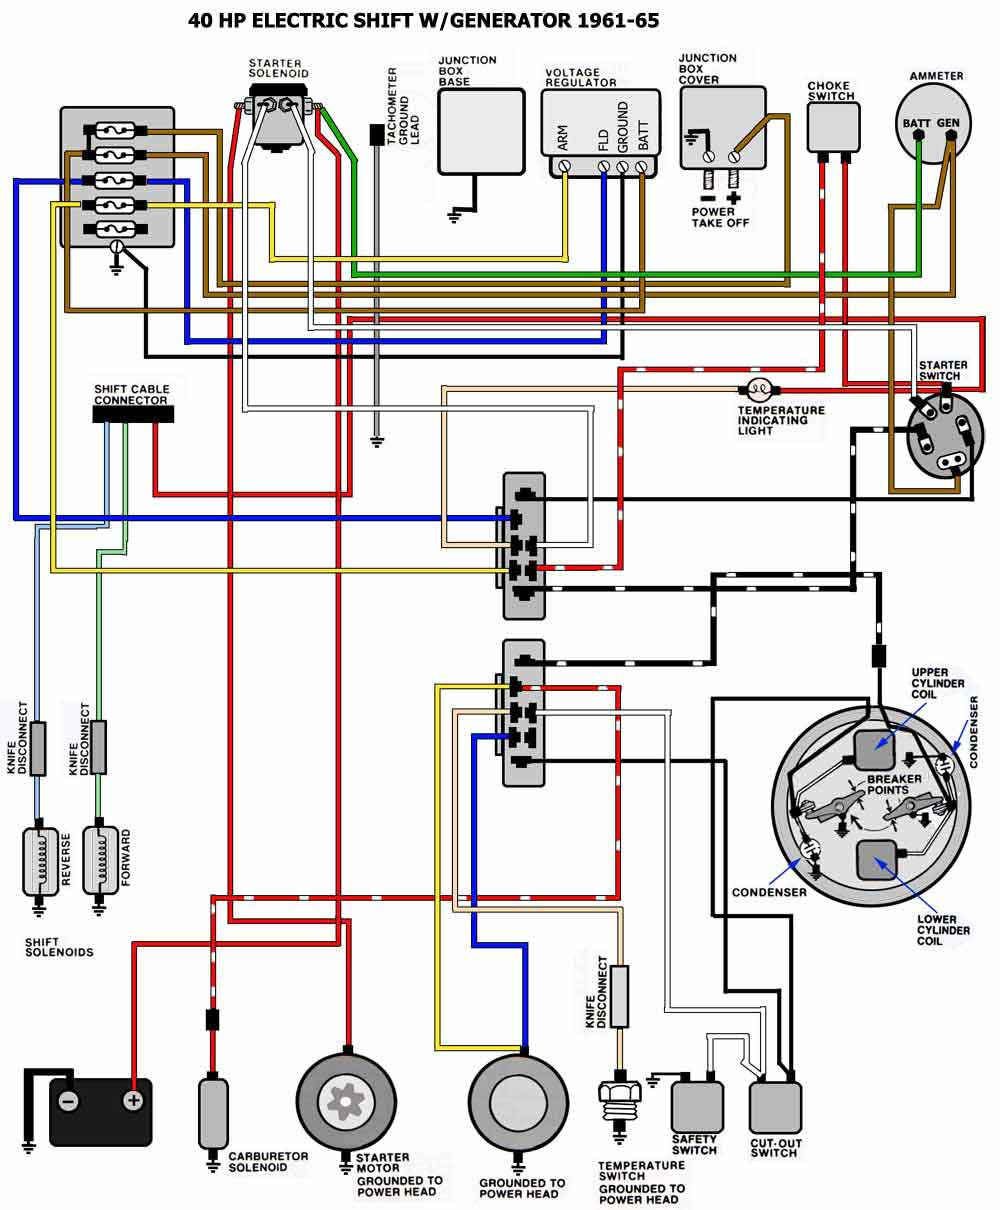 gallery of mercury trim motor wiring diagram sample johnson 150 outboard motor diagram mercury trim motor wiring diagram tilt and trim switch wiring diagram awesome technical information 2l